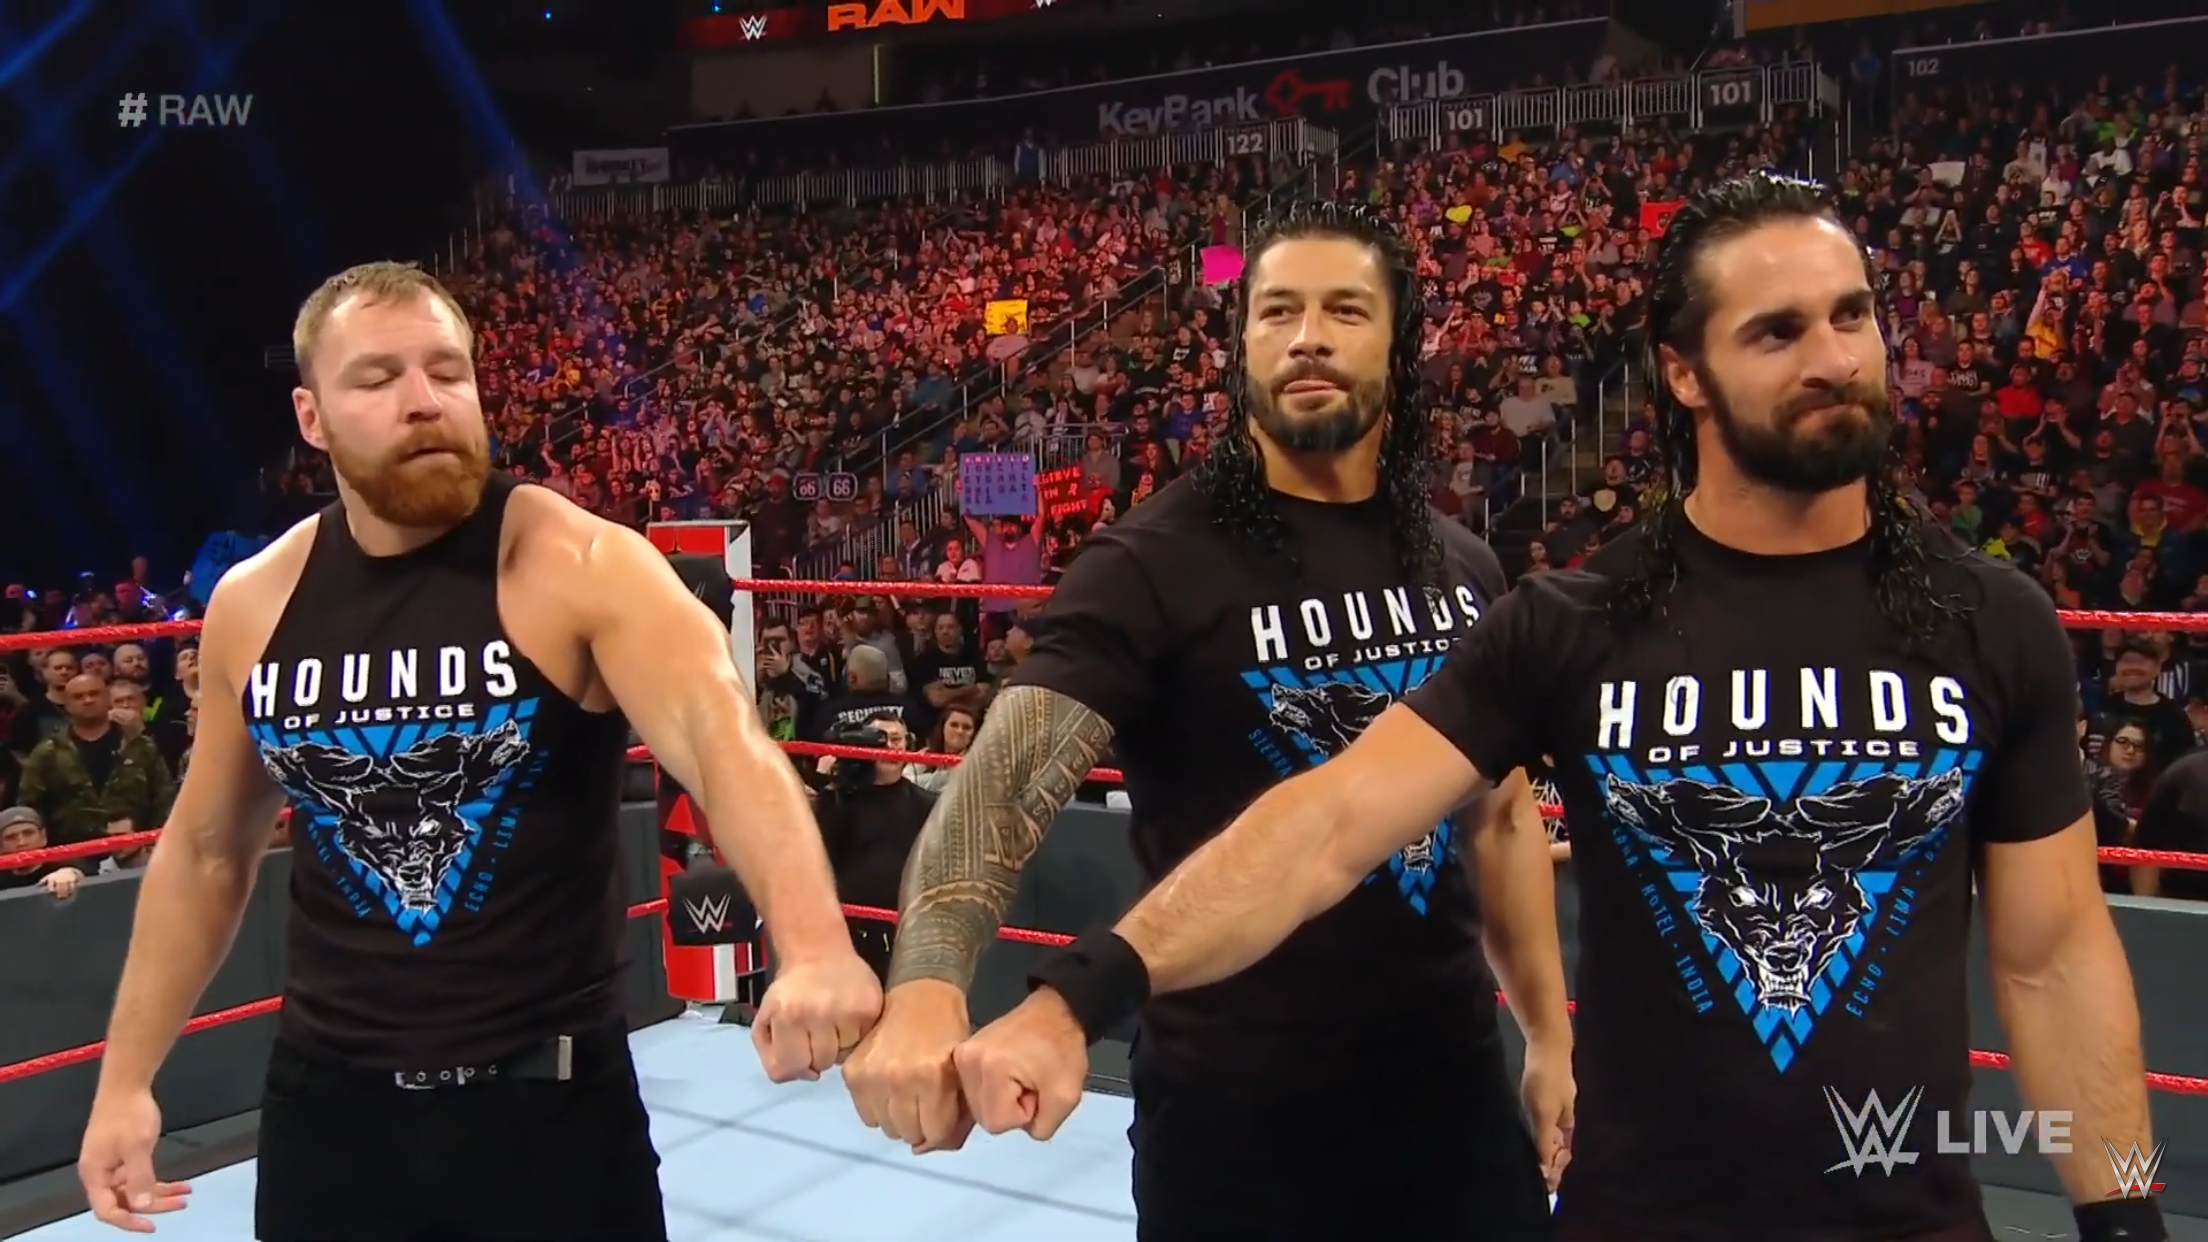 Pin By Raul Anoa I On The Shield Believe That Wwe Superstar Roman Reigns The Shield Wwe Wwe Roman Reigns